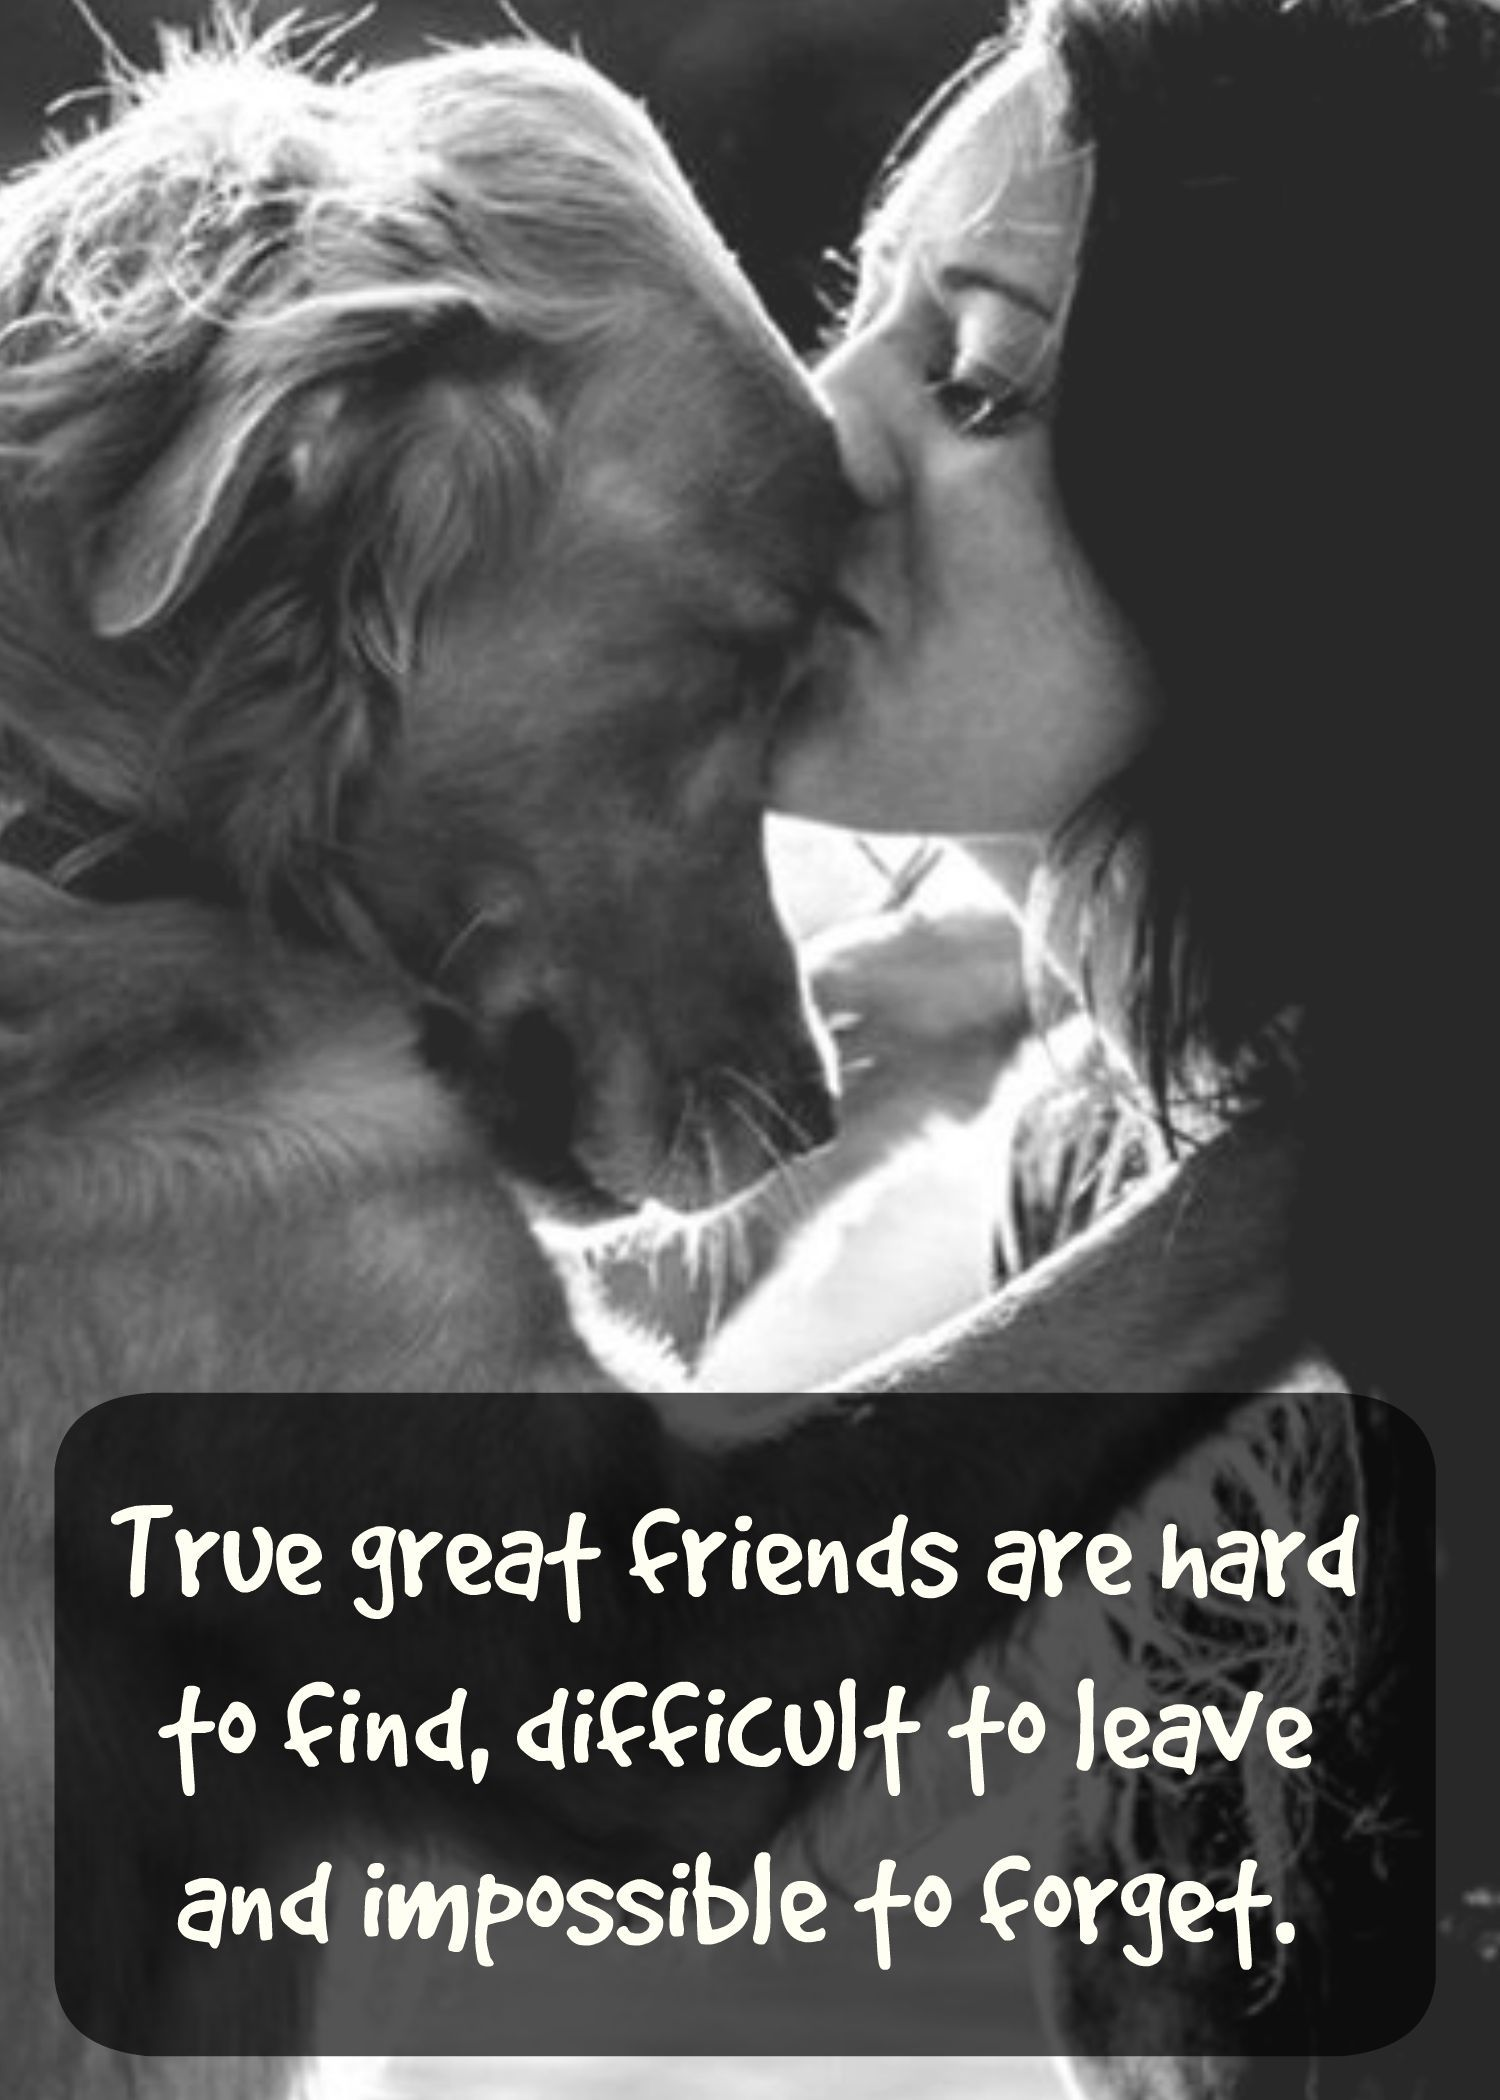 Quotes About Dog Friendship Dogs Are True Friendsquote Retriever  Www.fordogtrainers